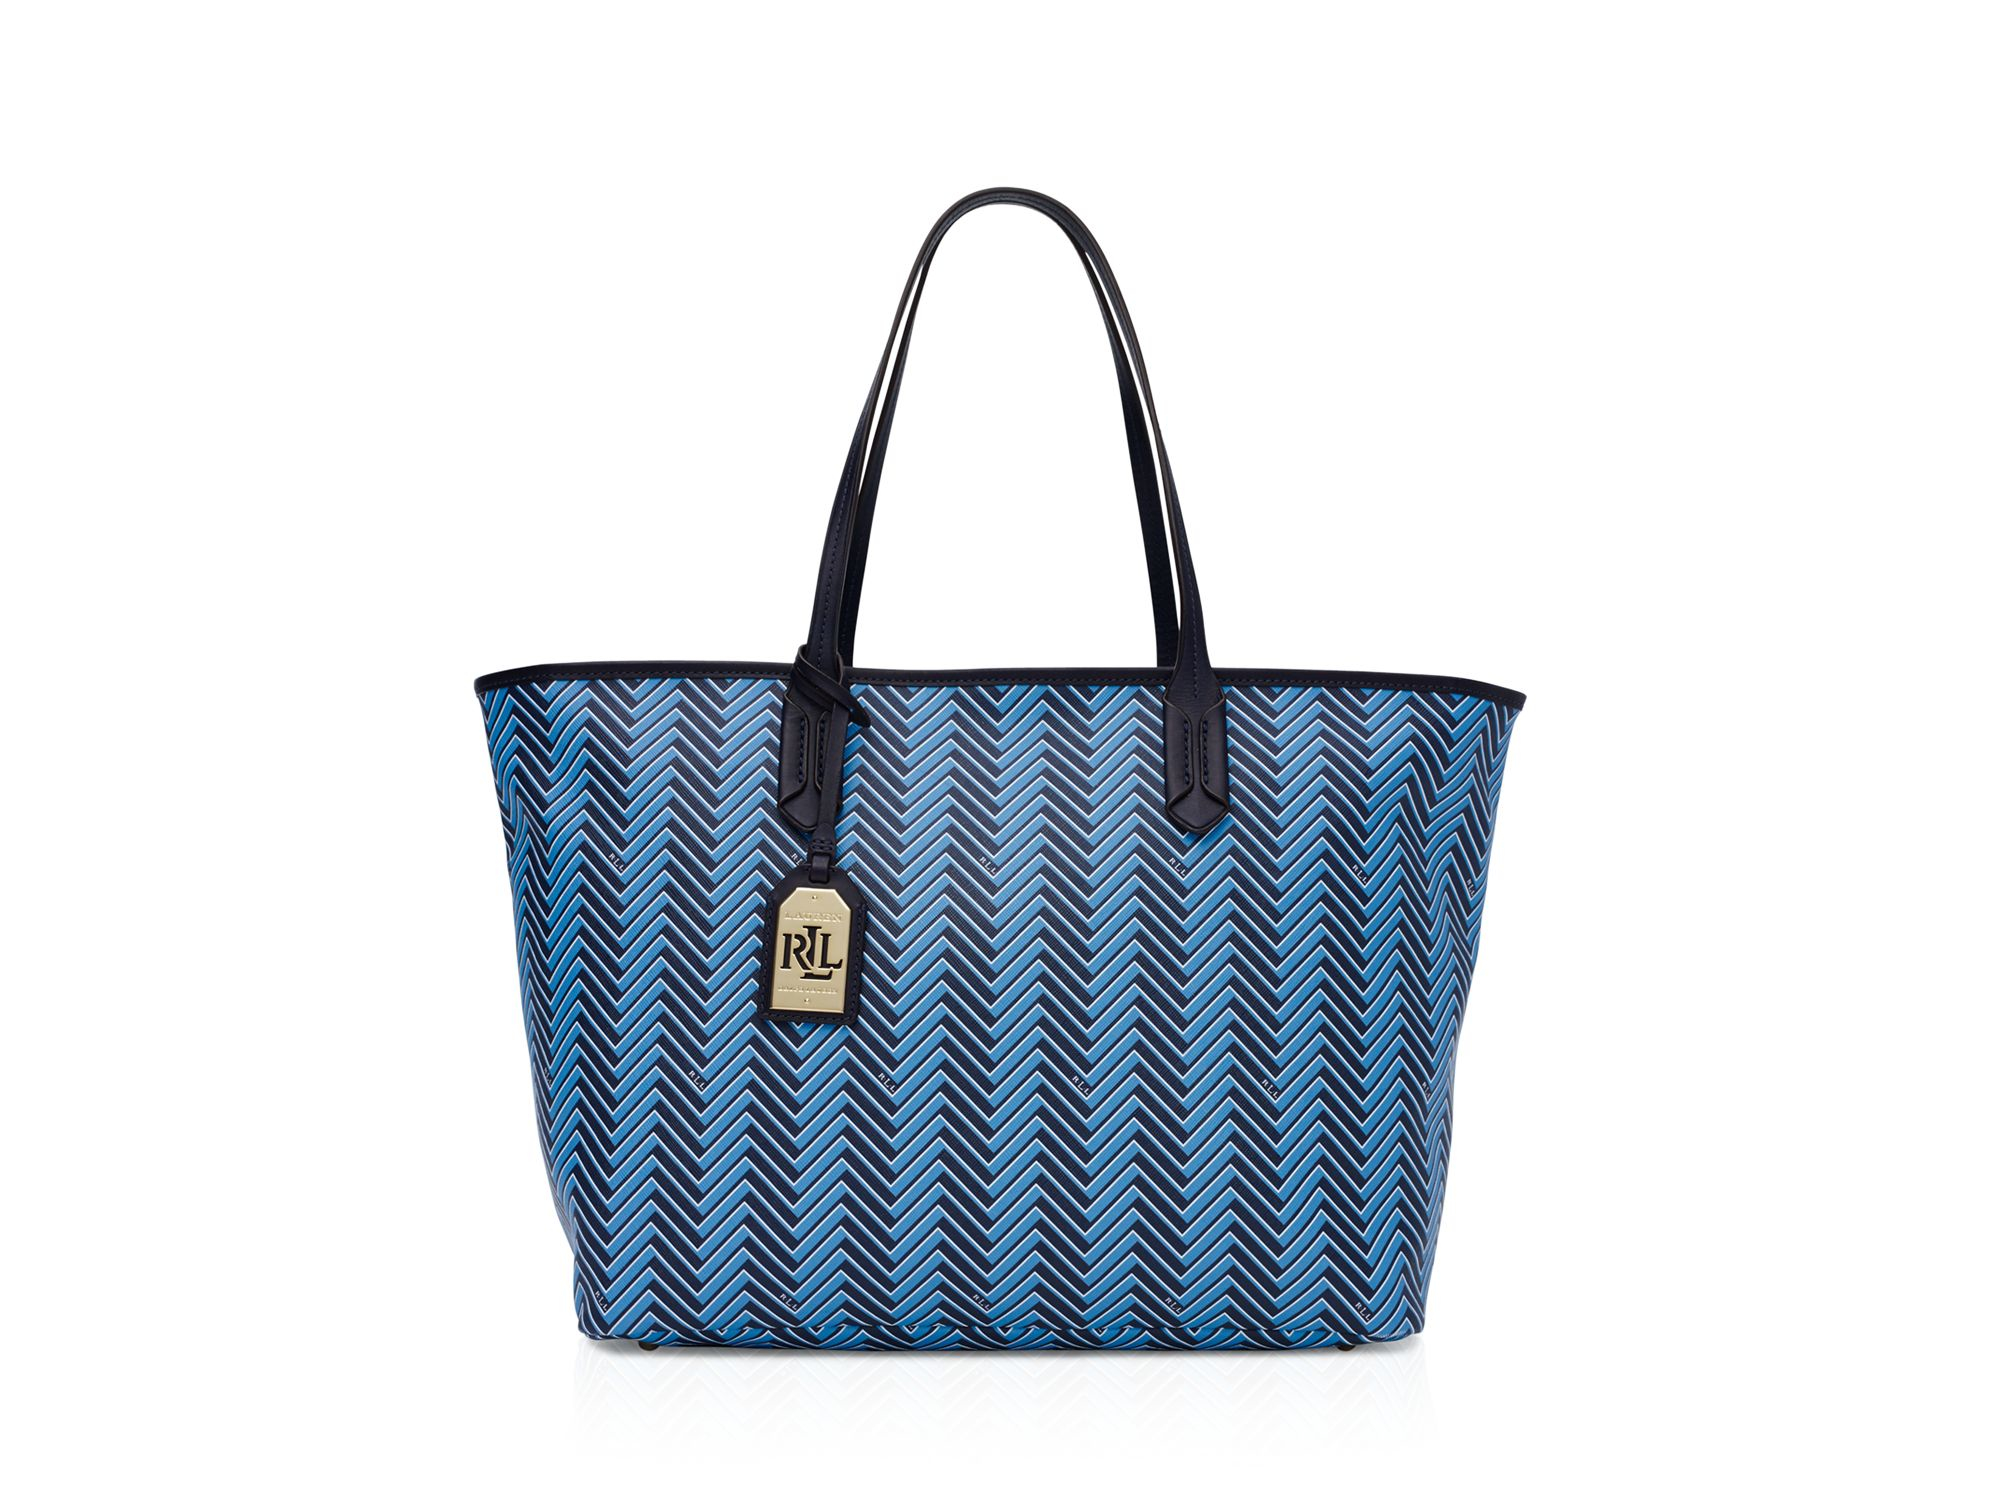 Lyst - Pink Pony Lauren Boswell Classic Tote in Blue f0b030edc3a3a